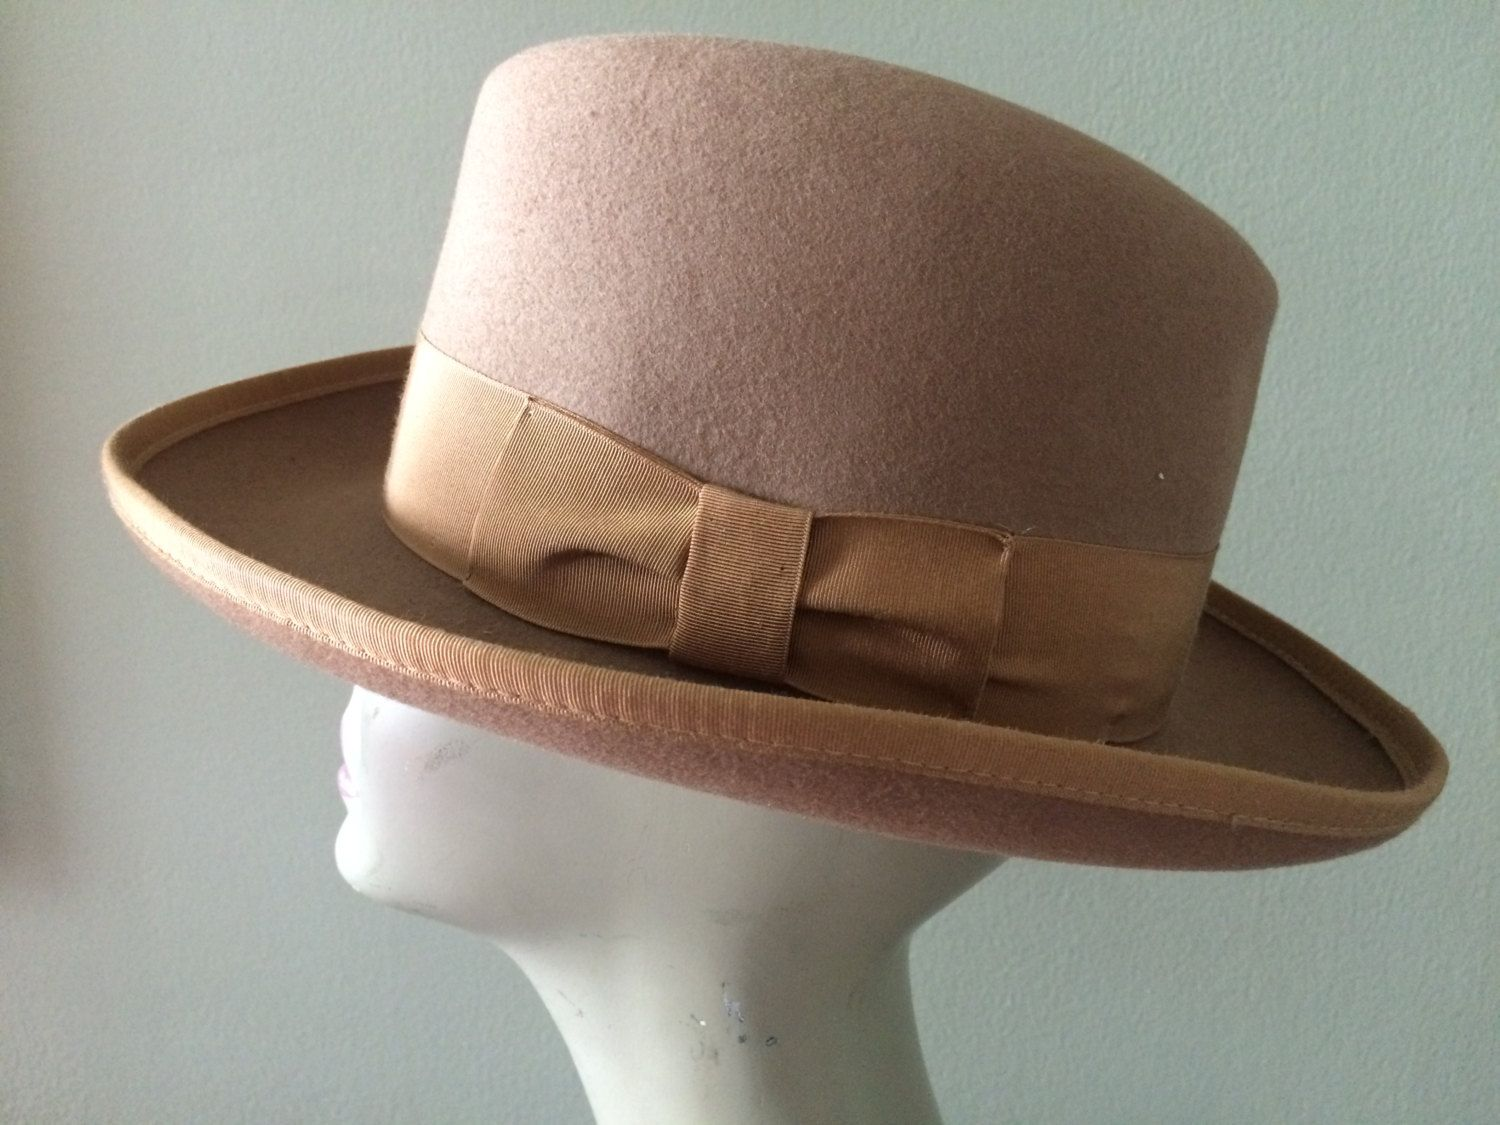 cda638936b6f3 Men s Camel Brown Wool Fedora Hat Timely Fashion by Park Royal Size M by  LottieDottieVintage on Etsy